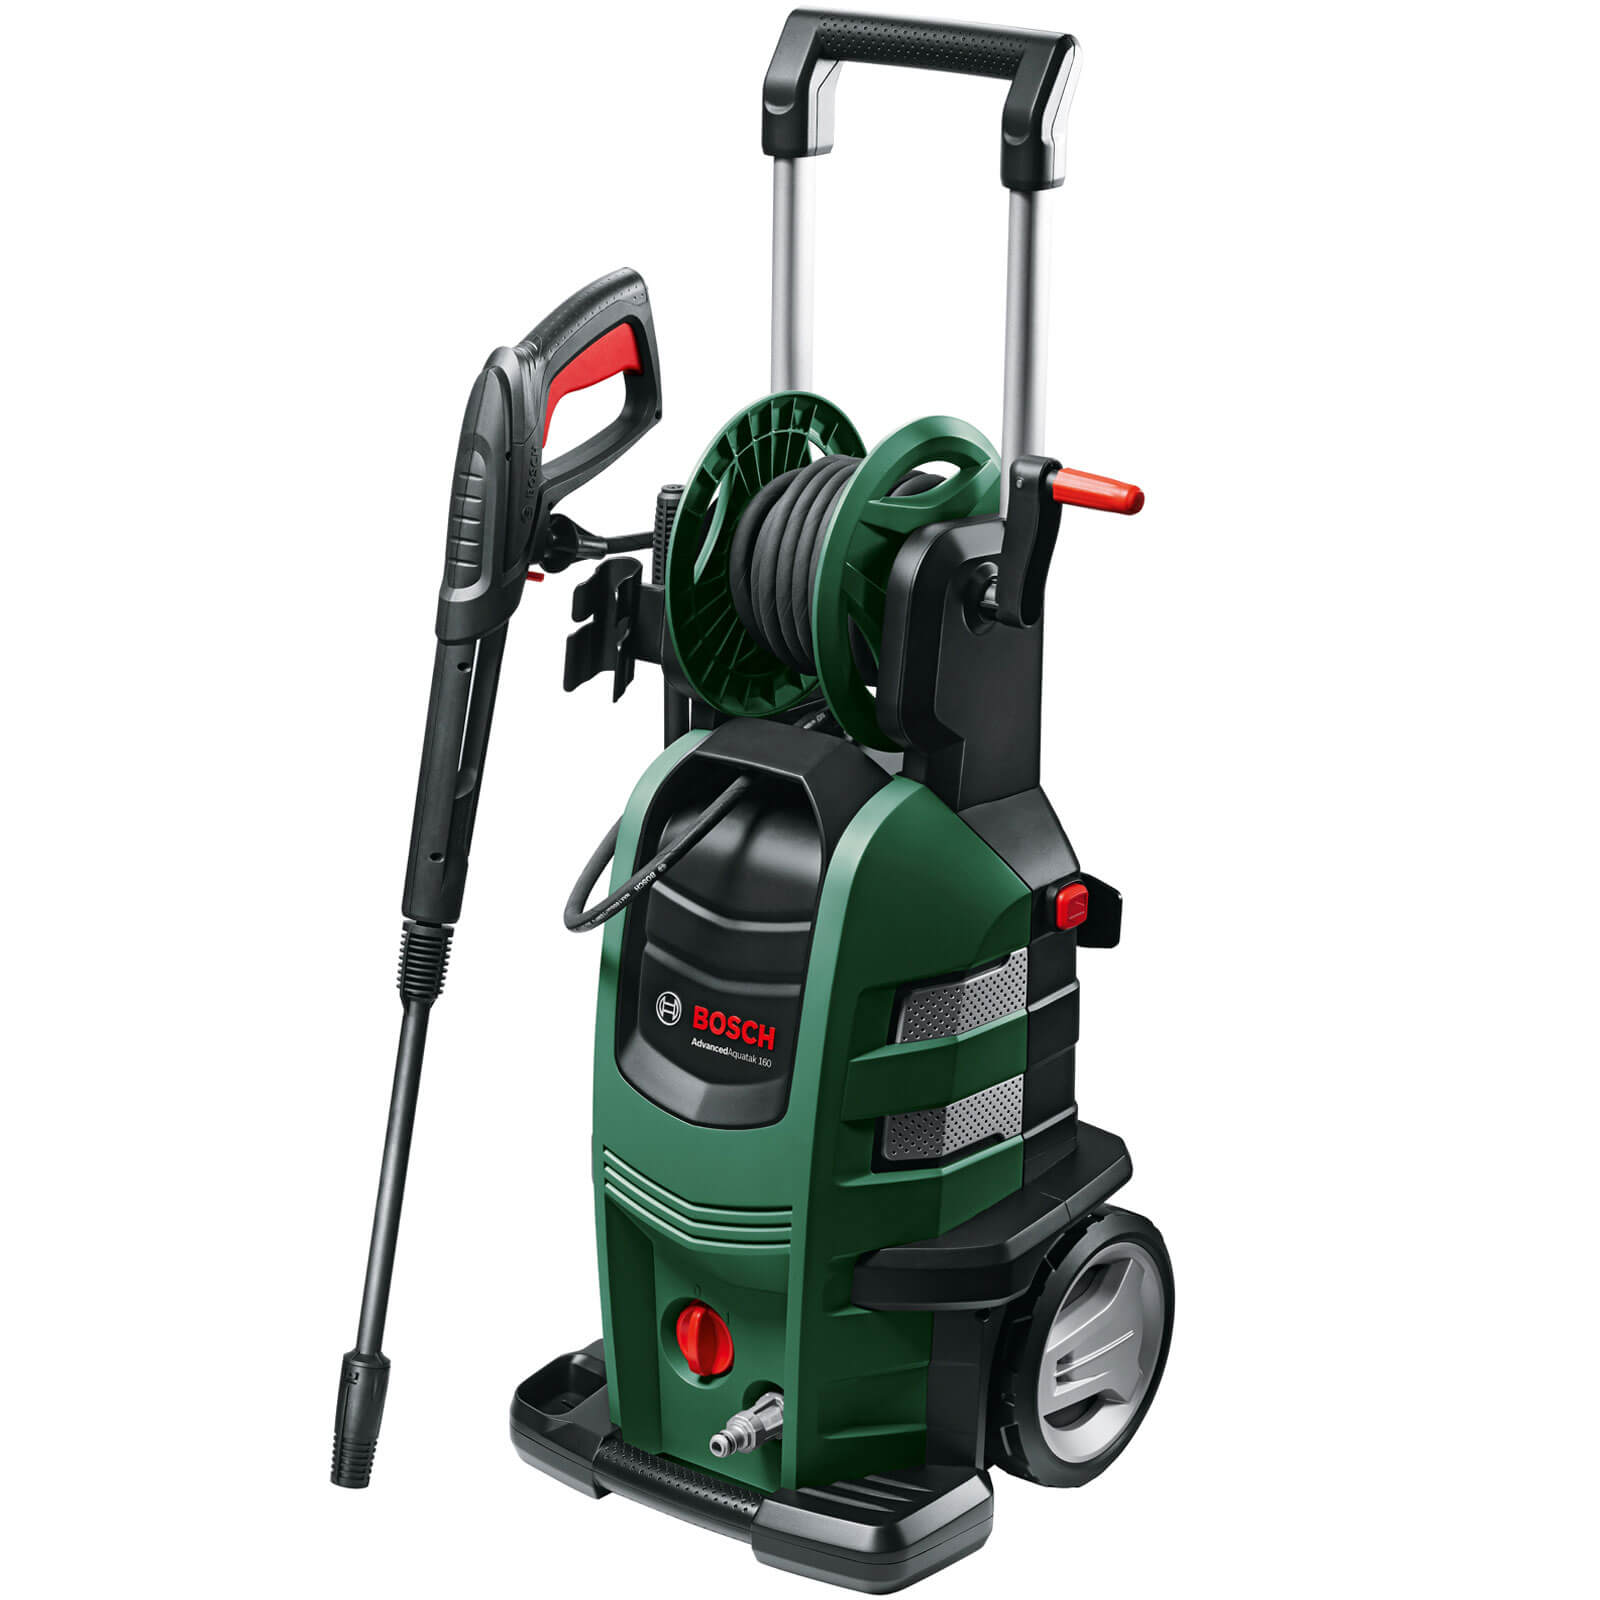 Image of Bosch ADVANCEDAQUATAK 160 Pressure Washer 160 Bar 240v